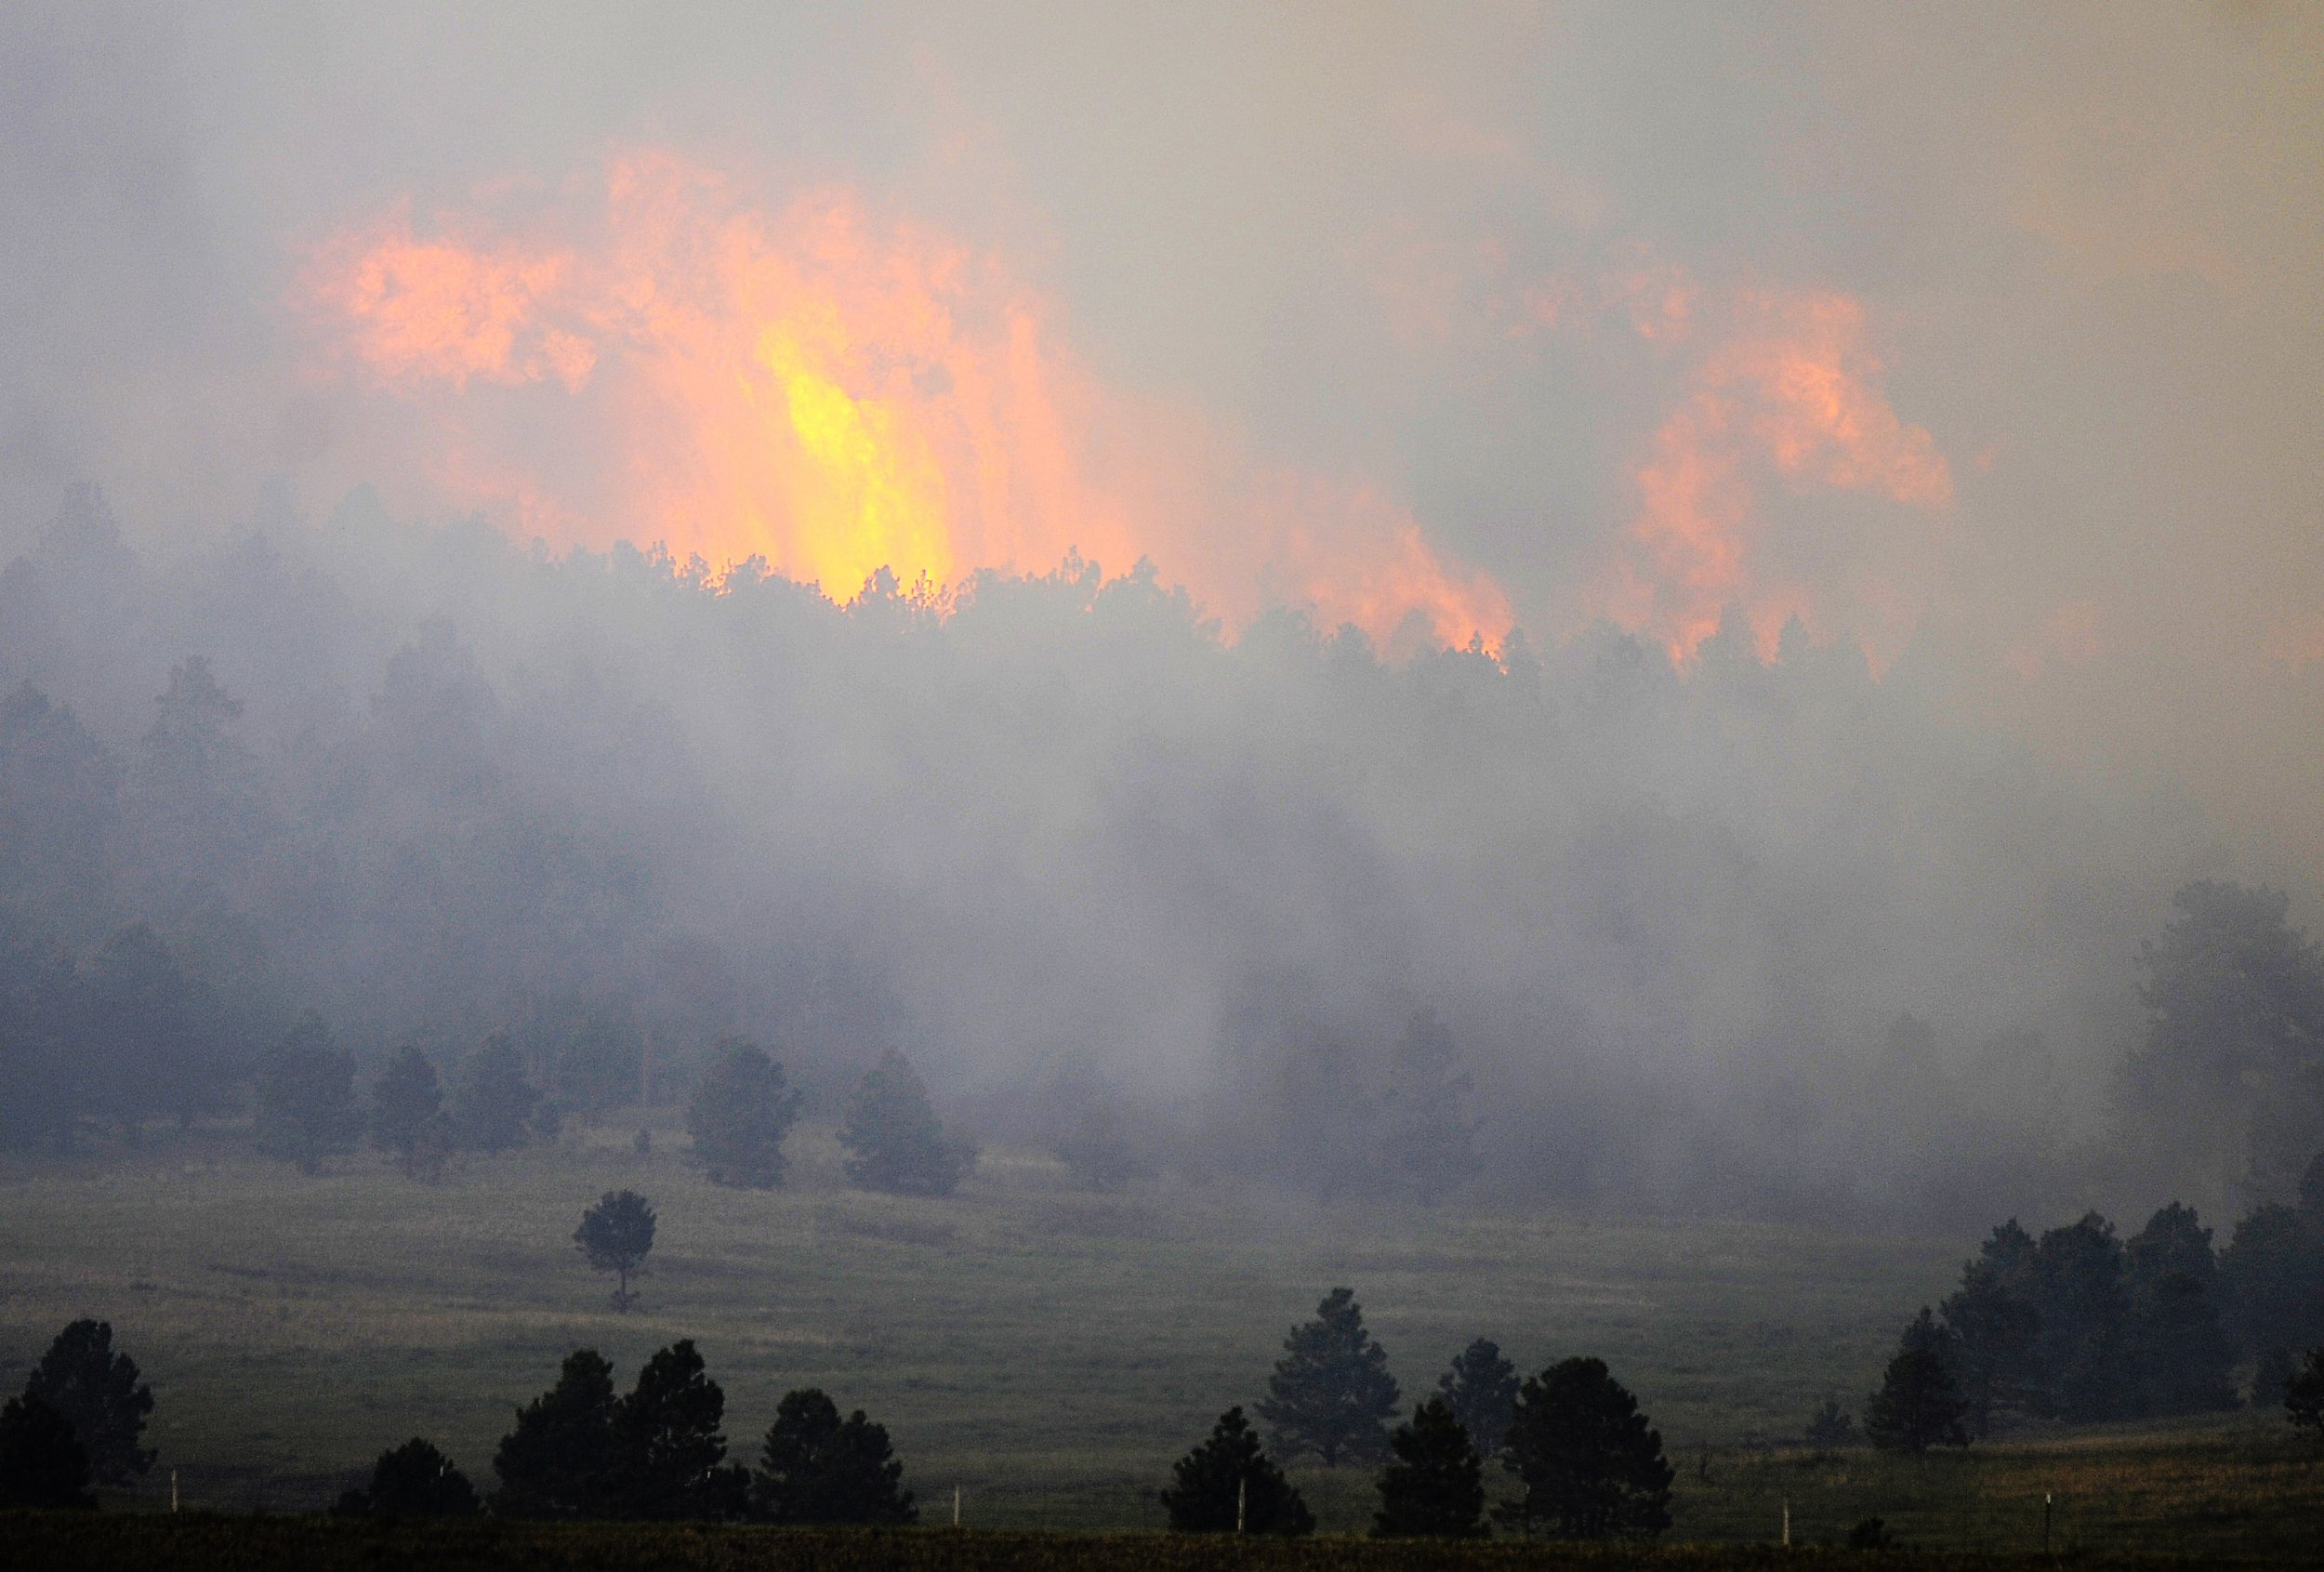 colorado widlfires one of worst years